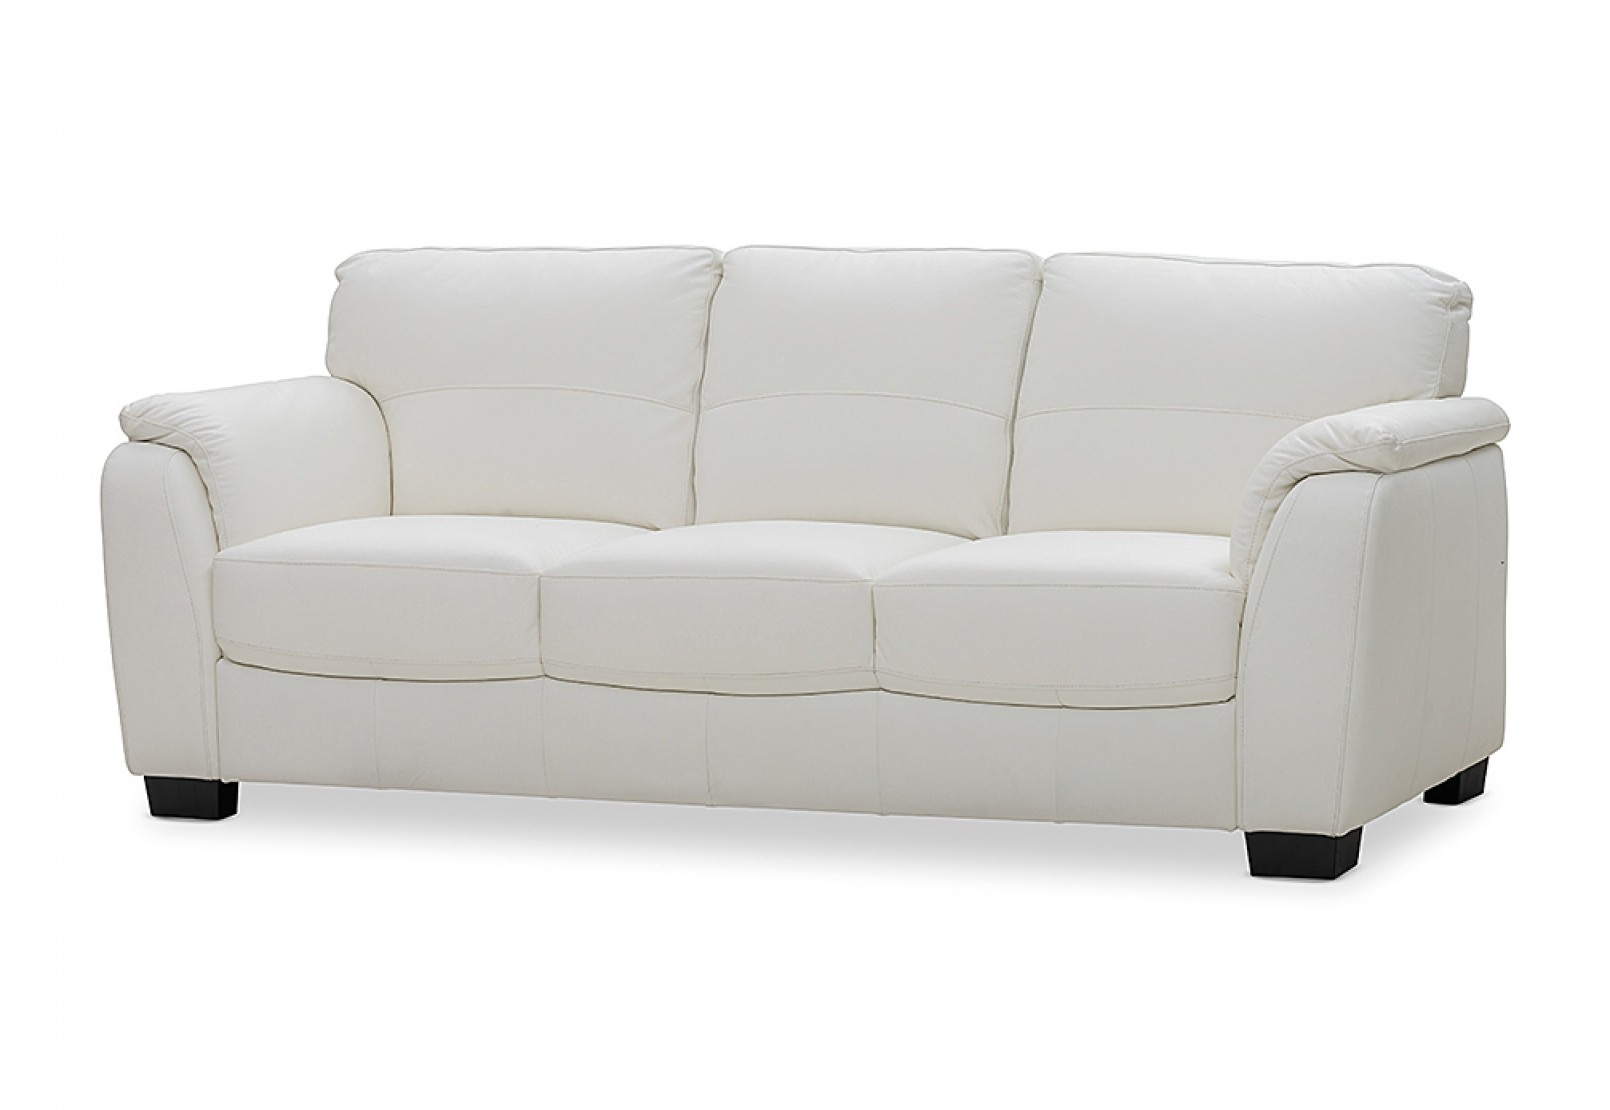 Marissa Leather 3 Seater Sofa | Amart Furniture With Marissa Sofa Chairs (View 15 of 25)